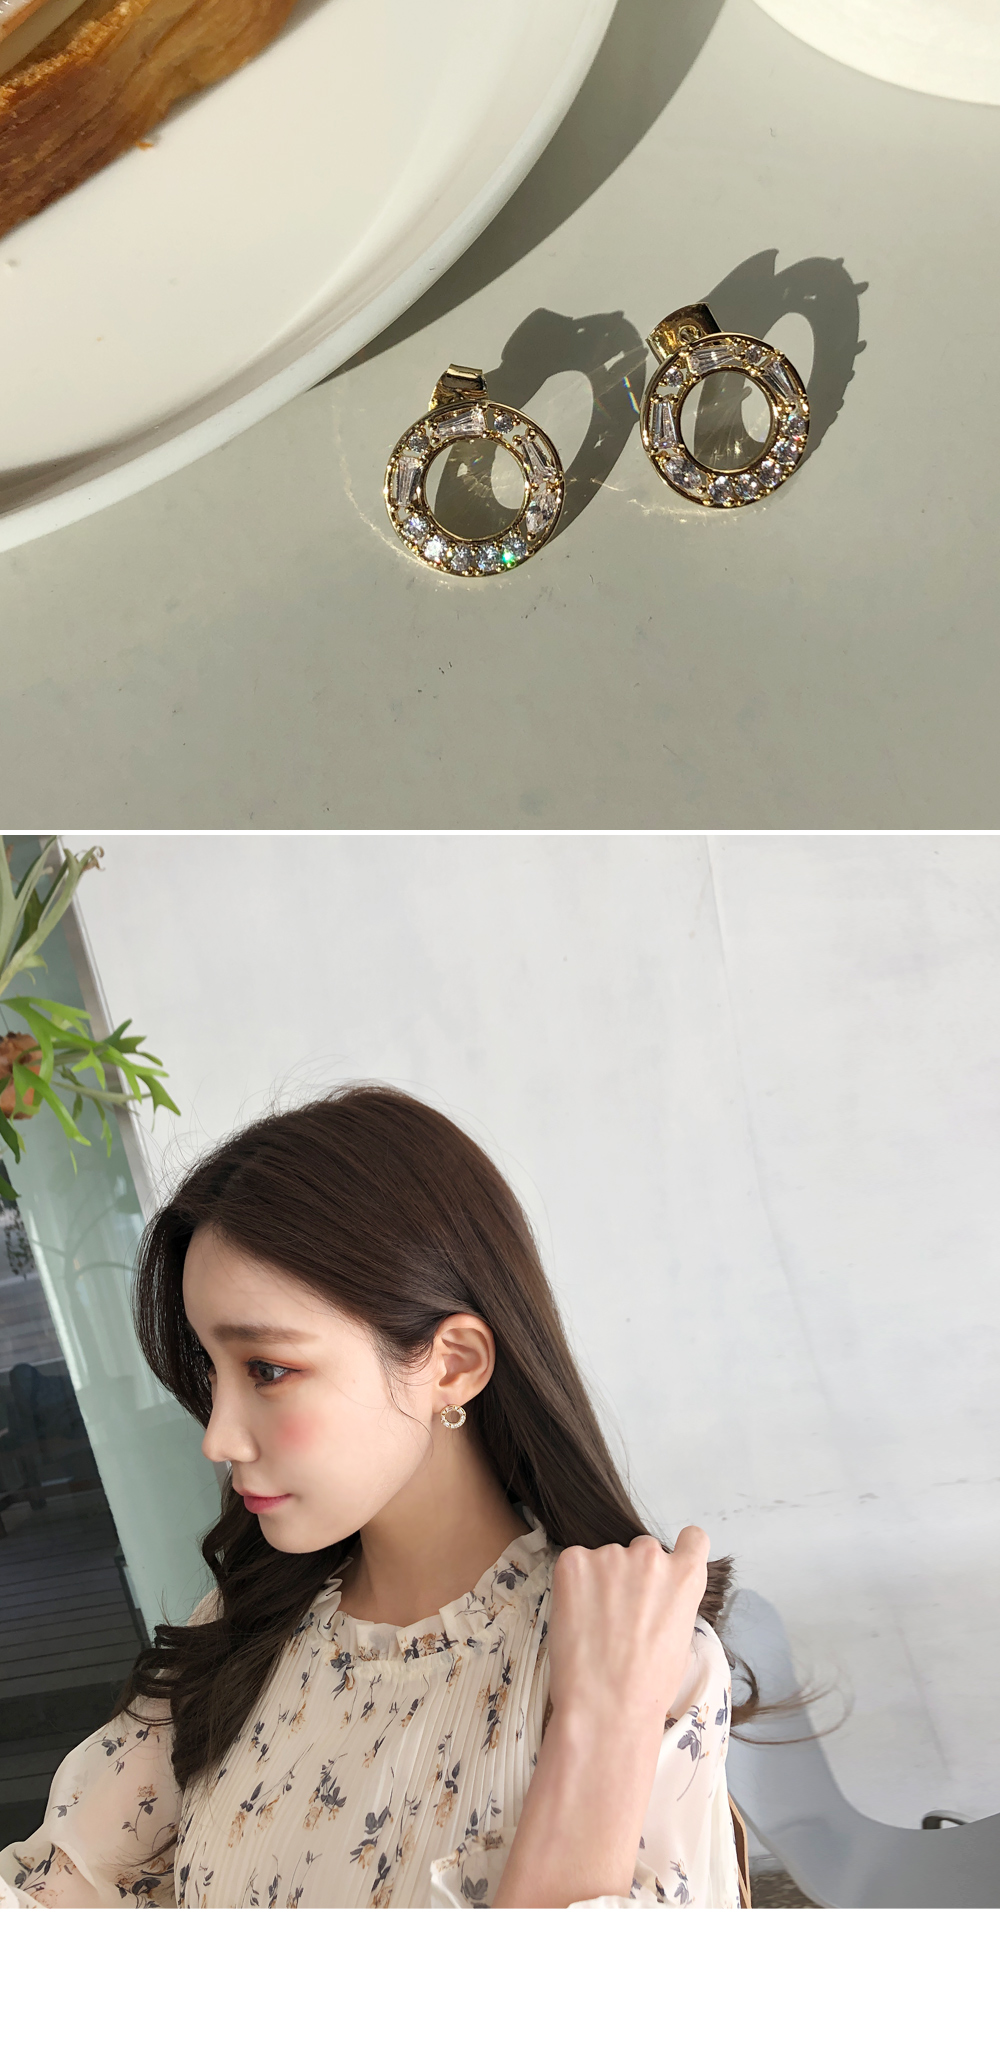 The Bright Earrings